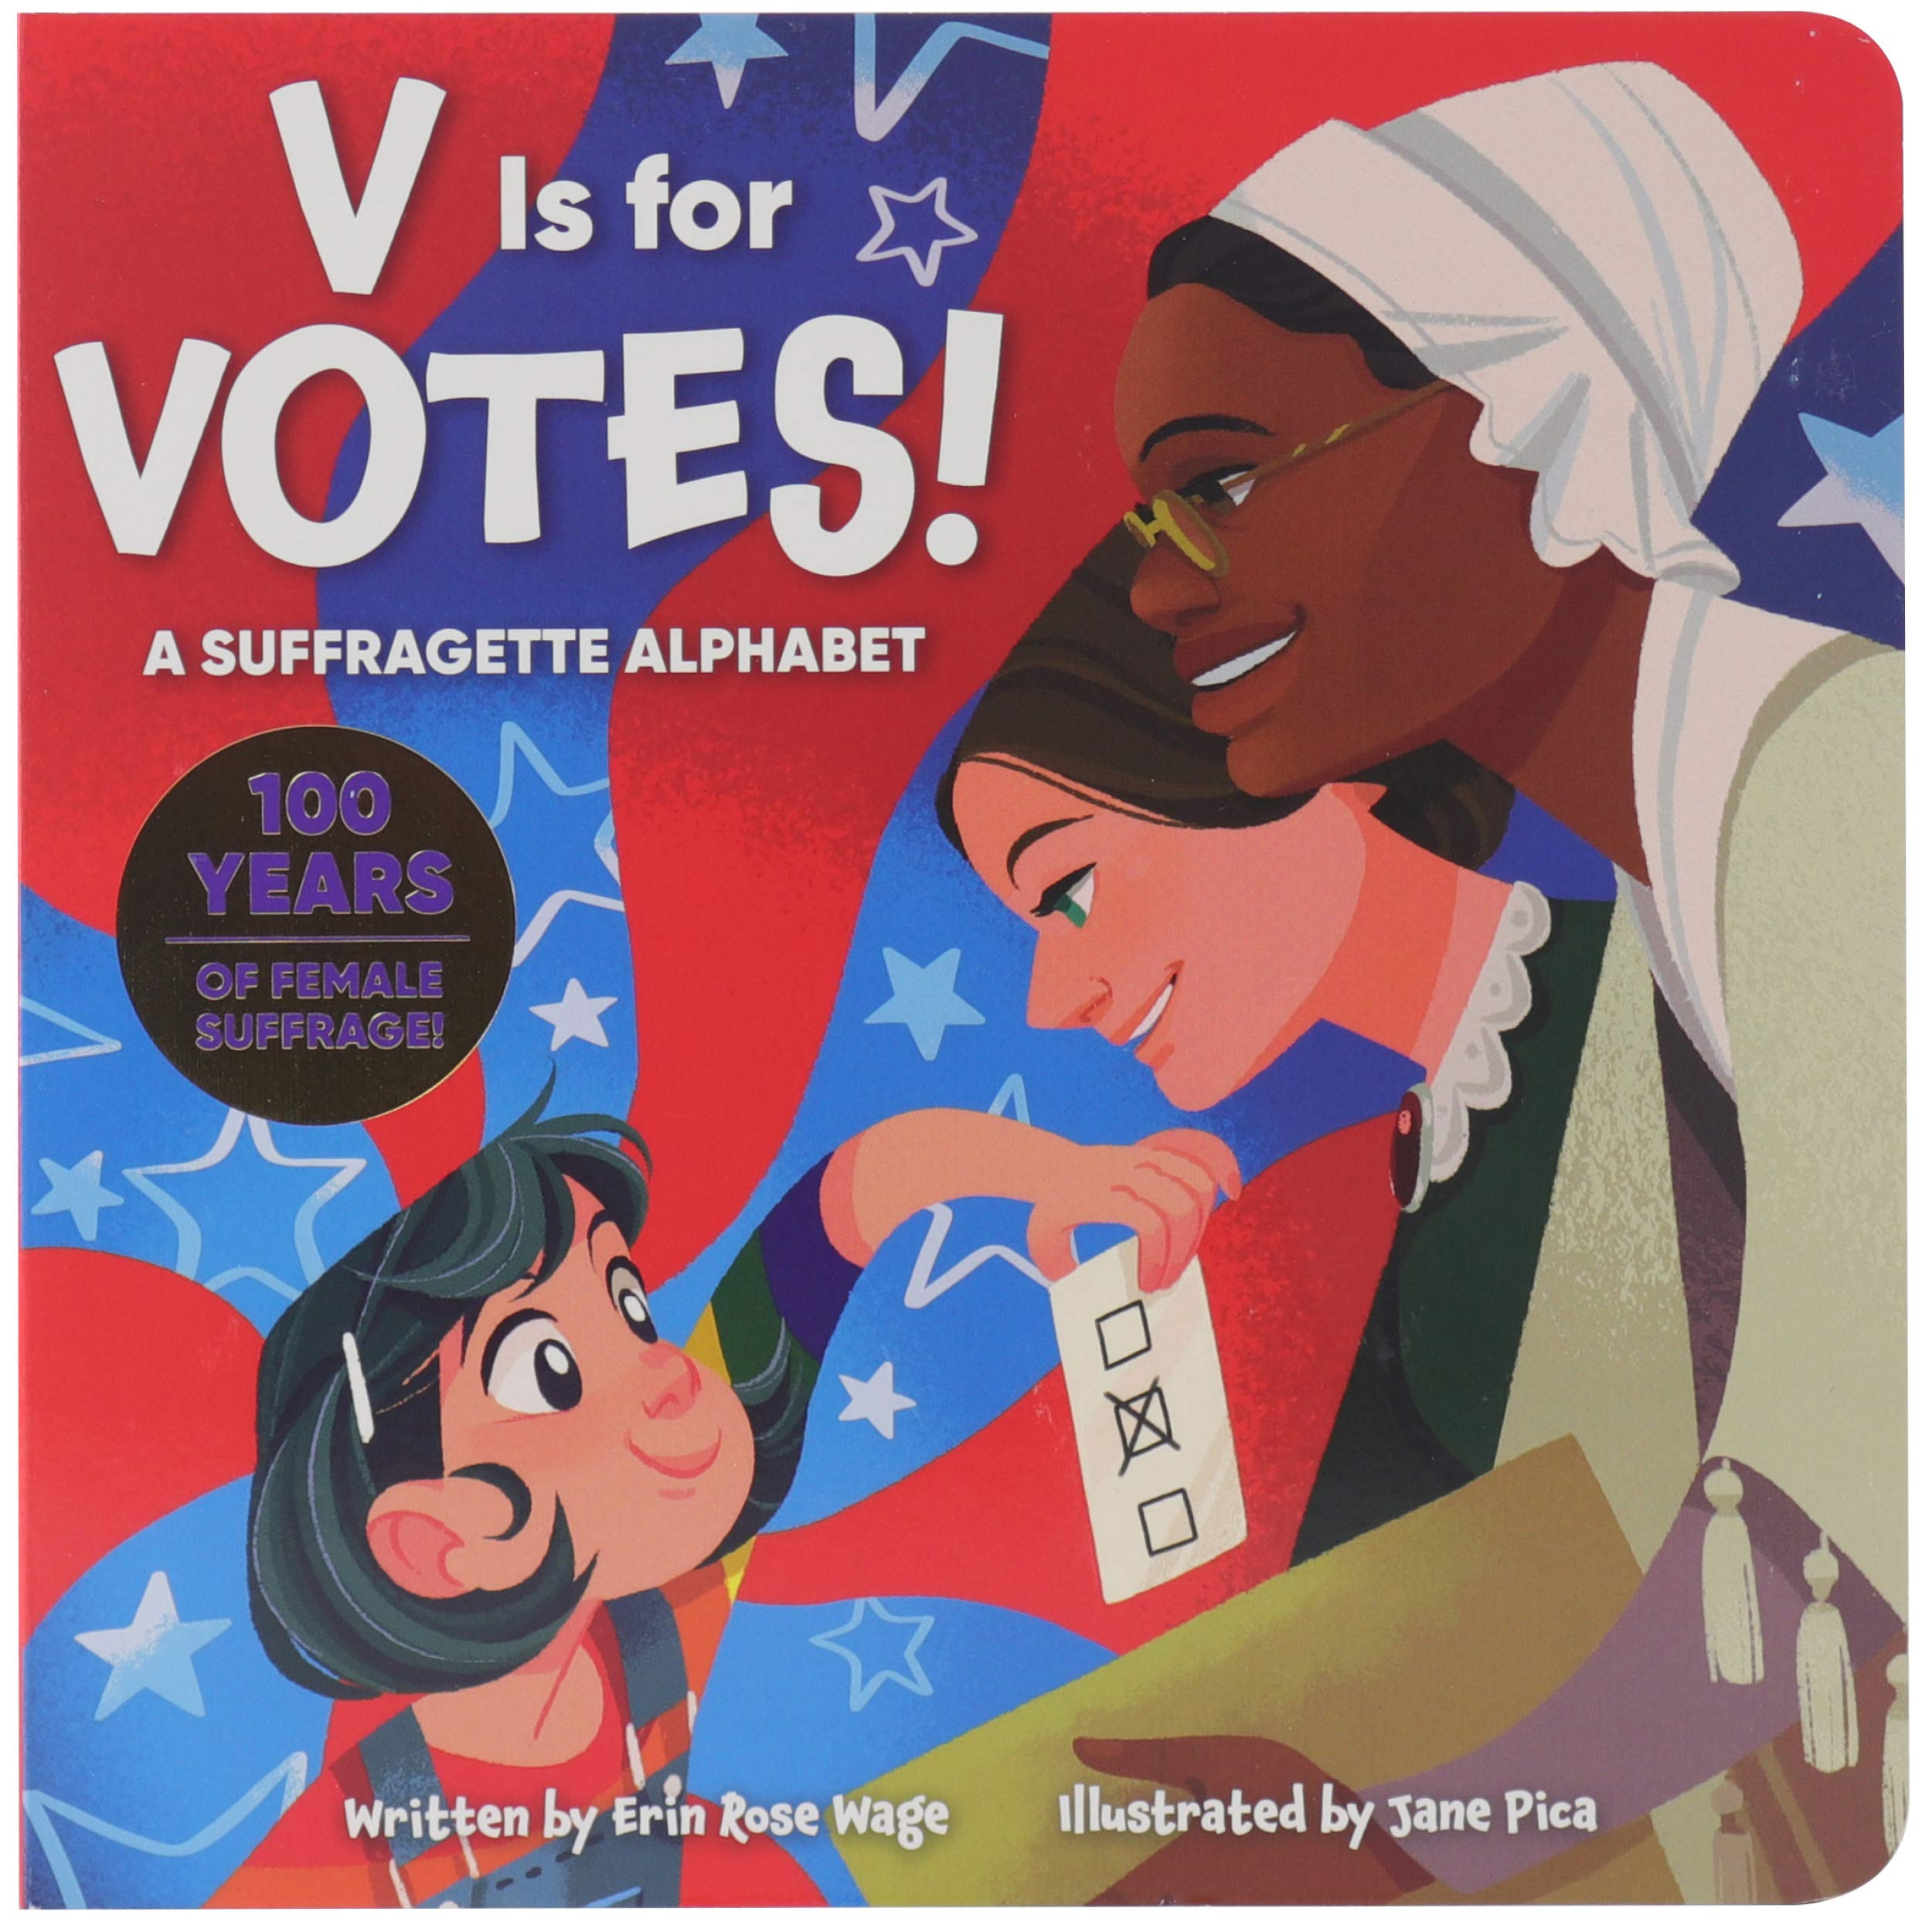 Election books: V is for Votes! A Suffragette Alphabet